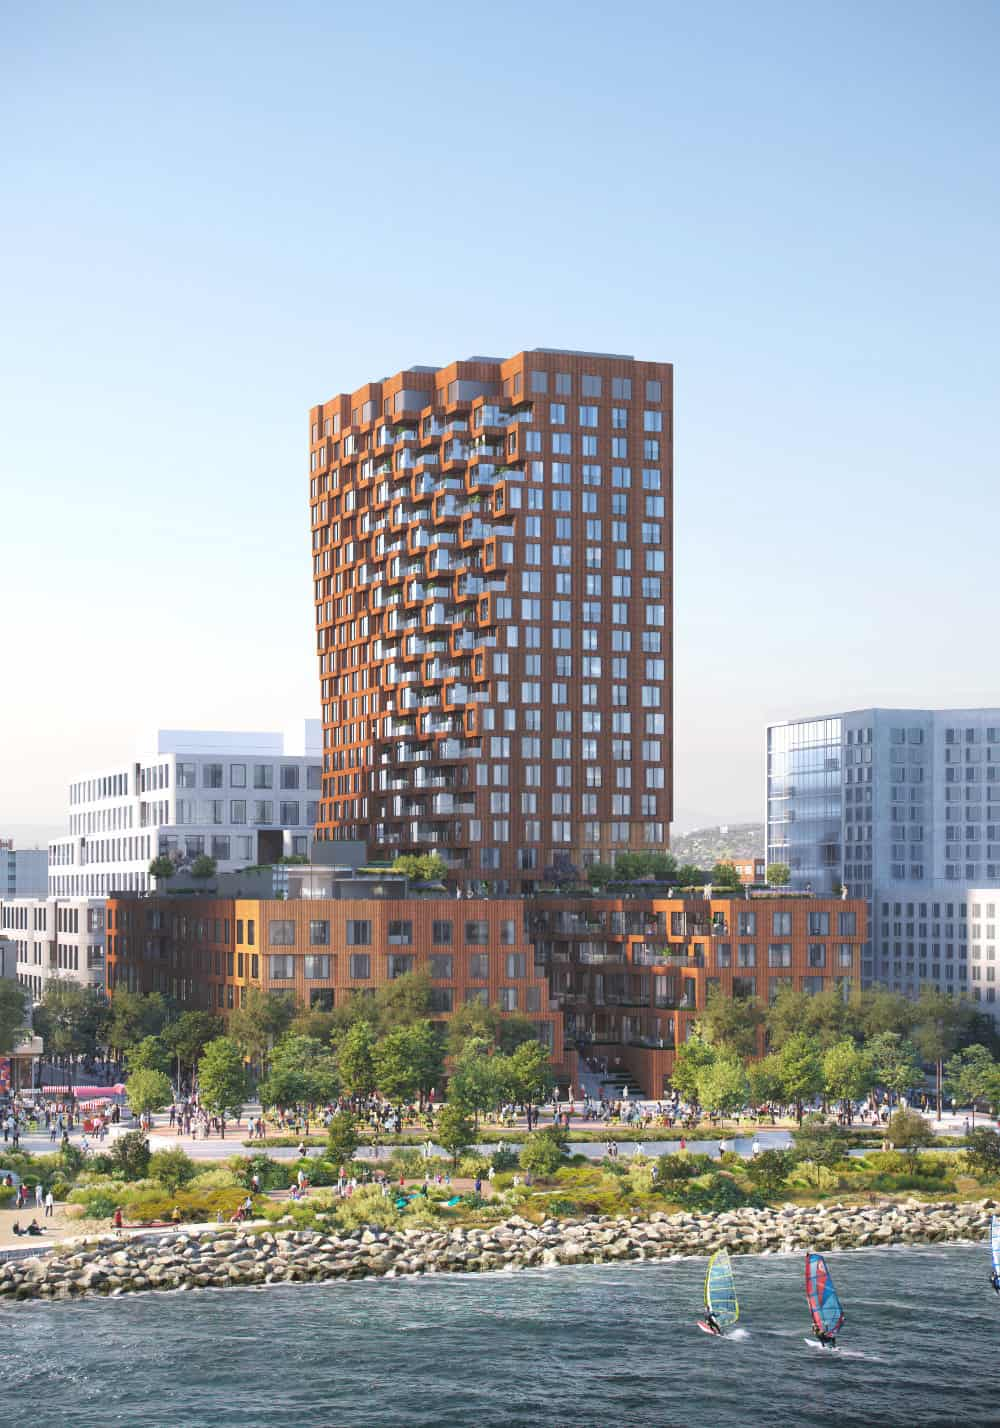 MVRDV's design forms an ensemble of low and high-rise sharing a publicly accessible canyon-like space